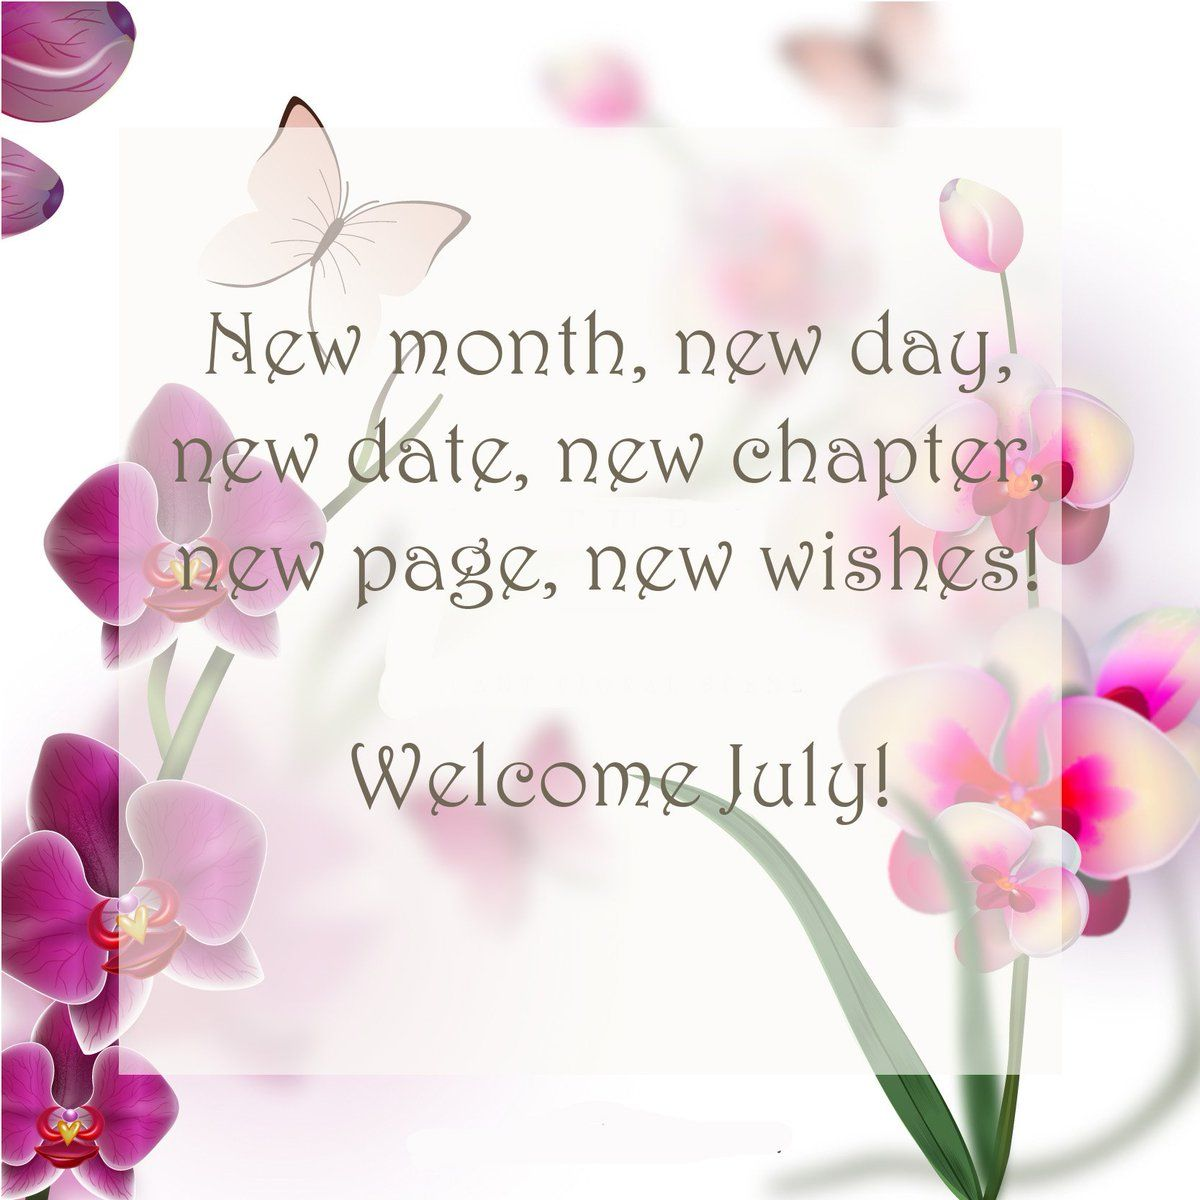 Pin by Ashok Singh on Welcome July Quotes | Welcome july